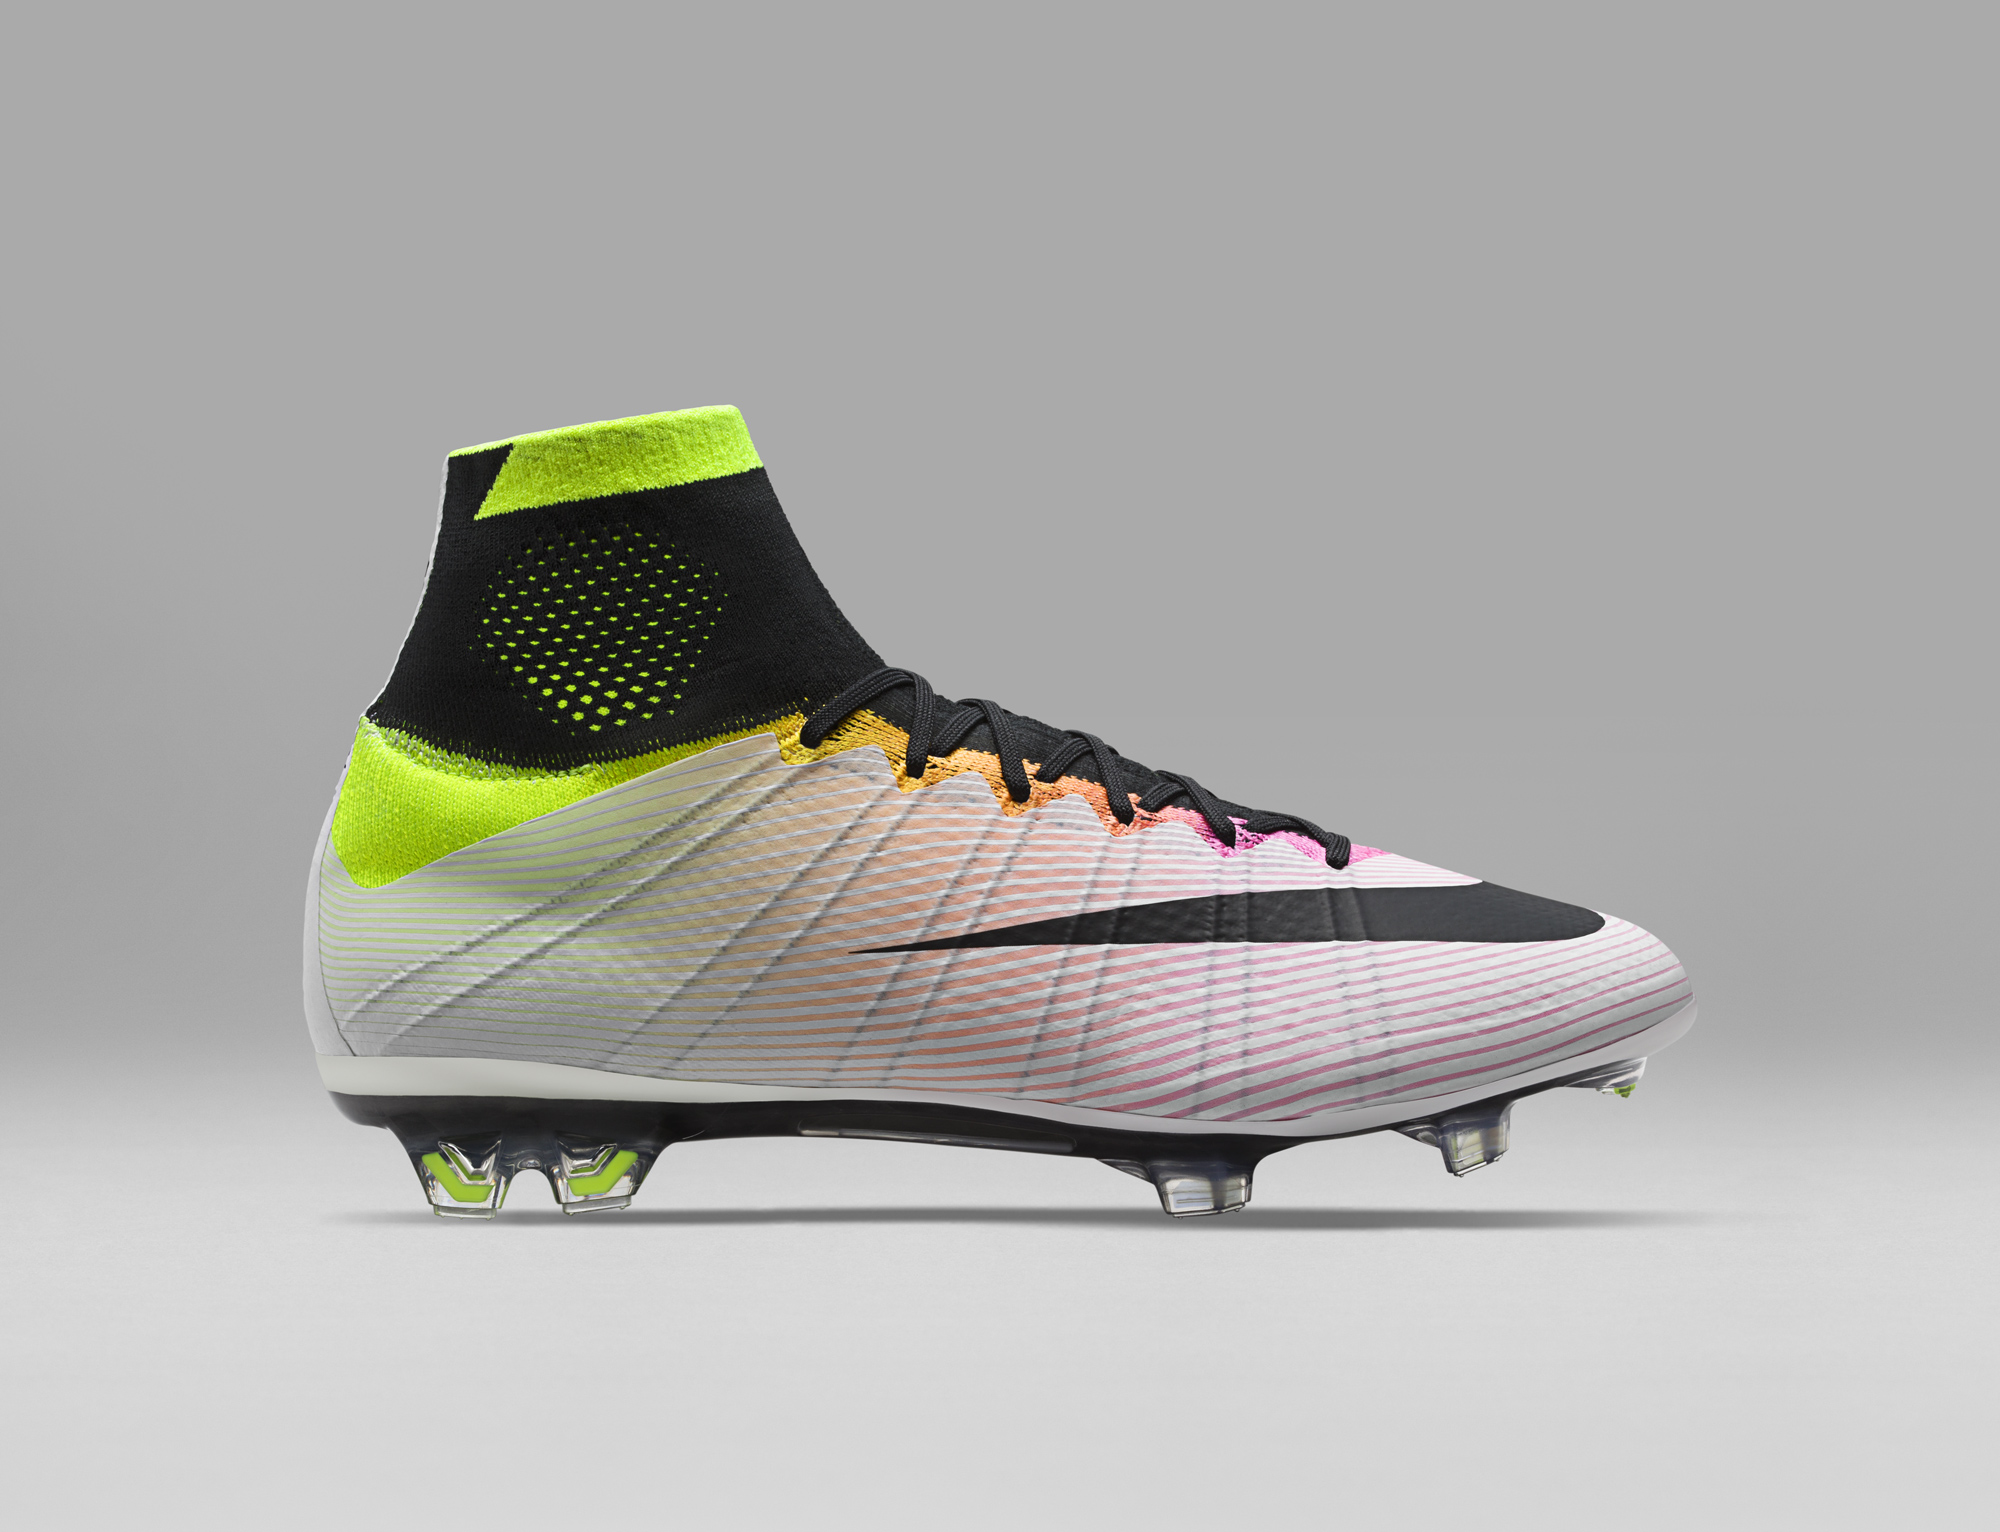 reveal pack fb superfly a Maxinews fg – Il mercurial radiant Su16 qnTHxZUH